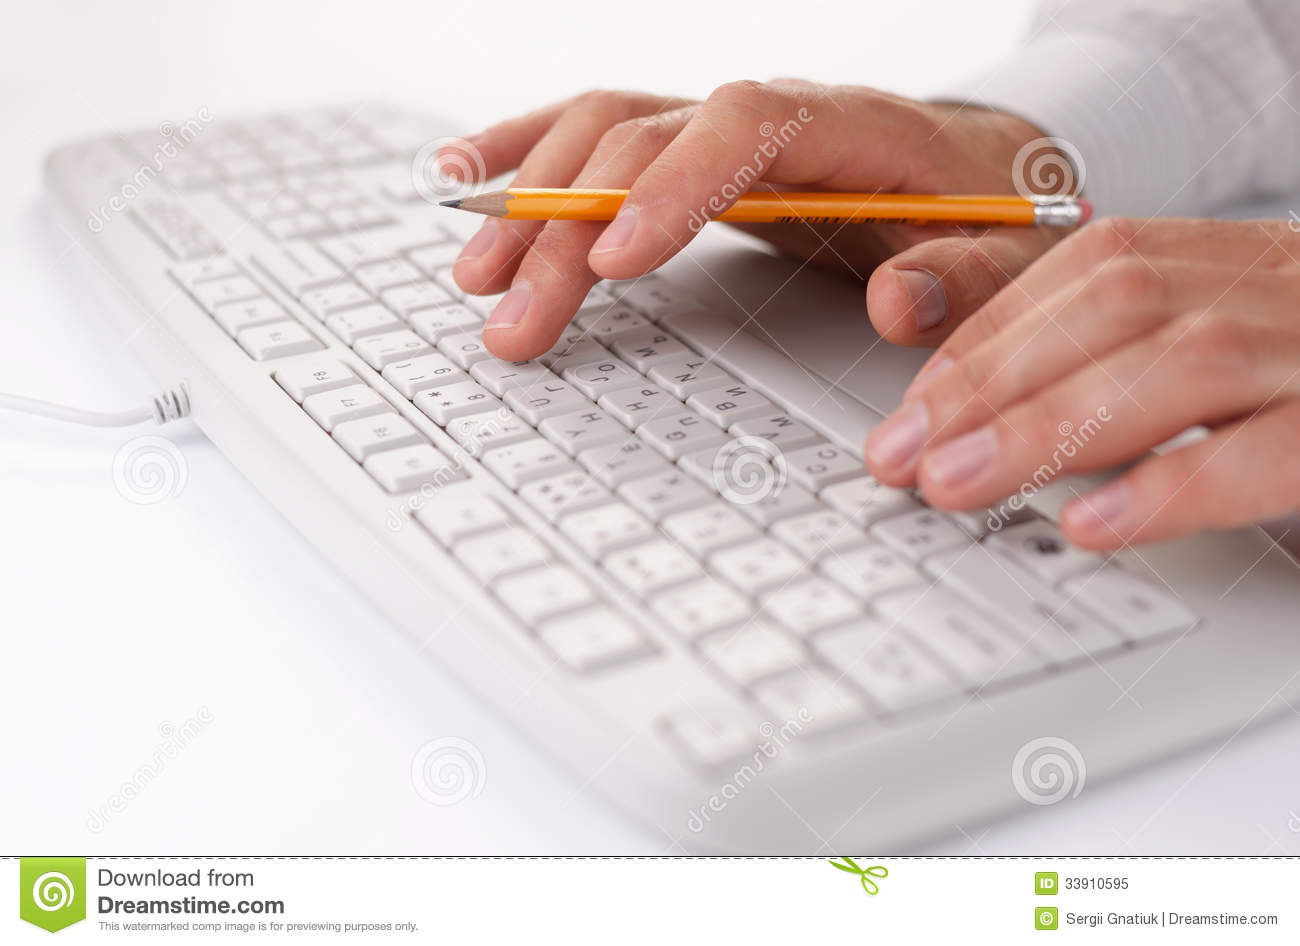 Man typing on a computer keyboard at work royalty free stock photo